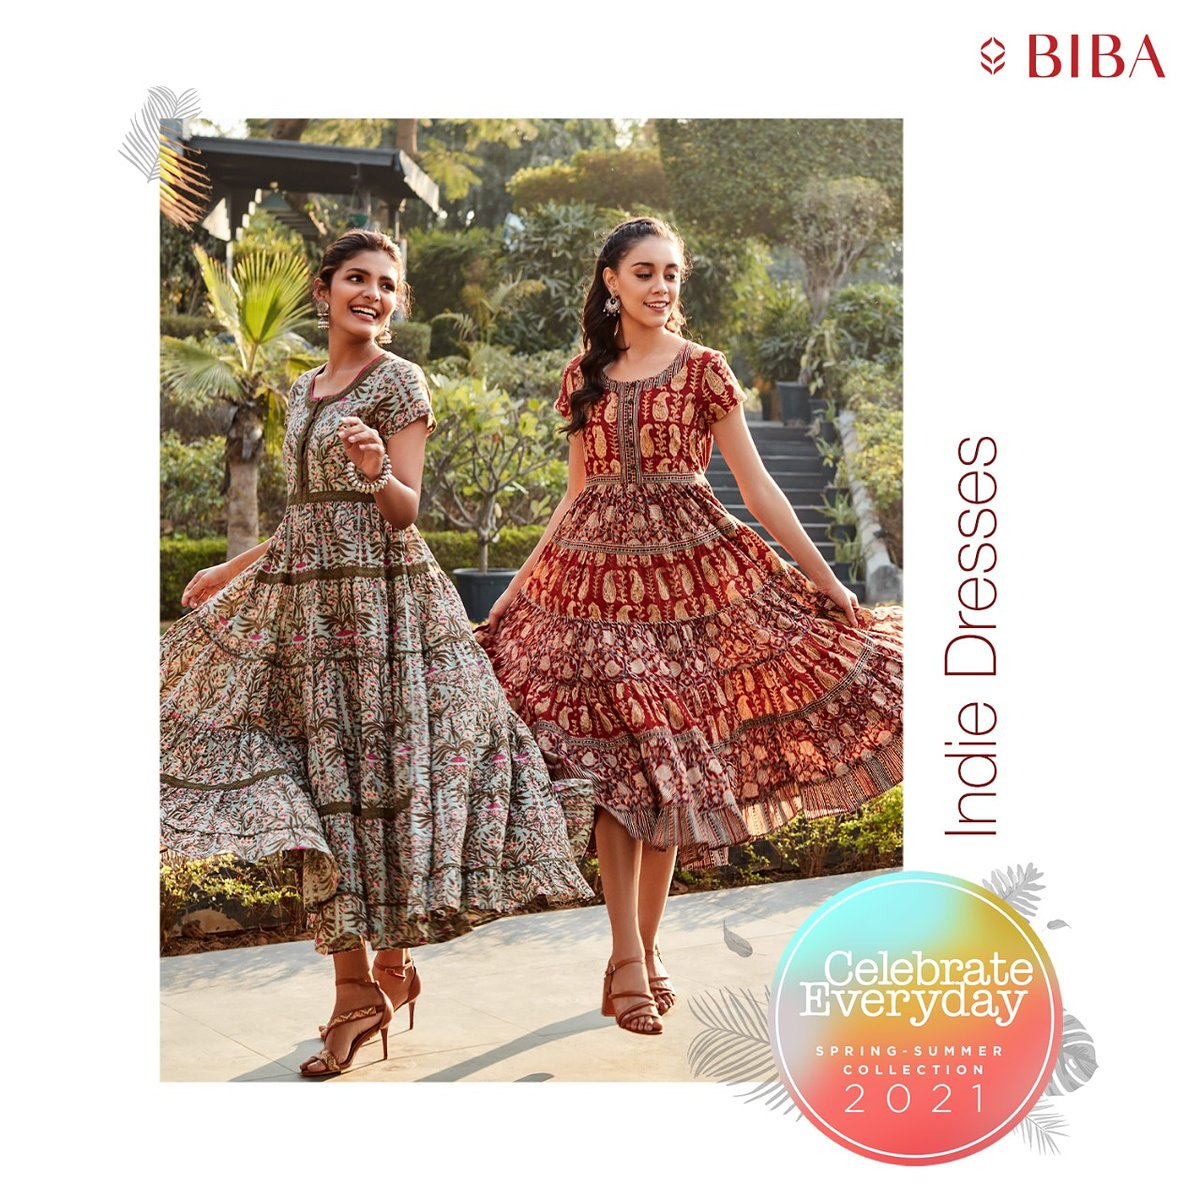 💃 For your girl-gang get together! 💃 Shop these effortless looks from our #IndieDresses range, #SpringSummerCollection.  https://t.co/aSLmgXAb4h https://t.co/RZPwyTkvR3